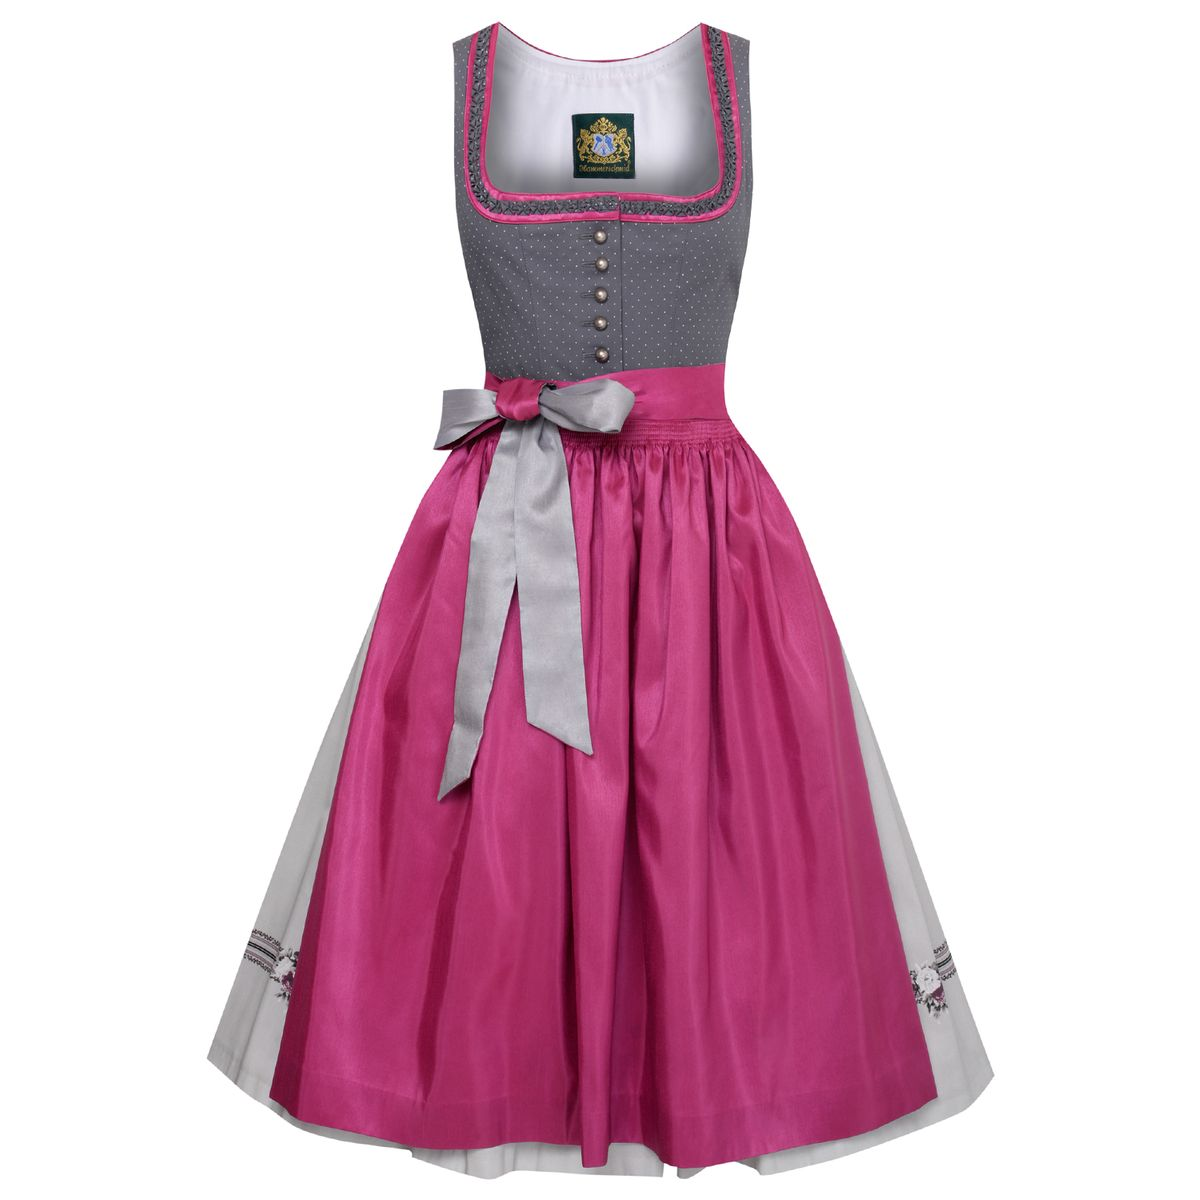 Dirndl jacken damen gunstig